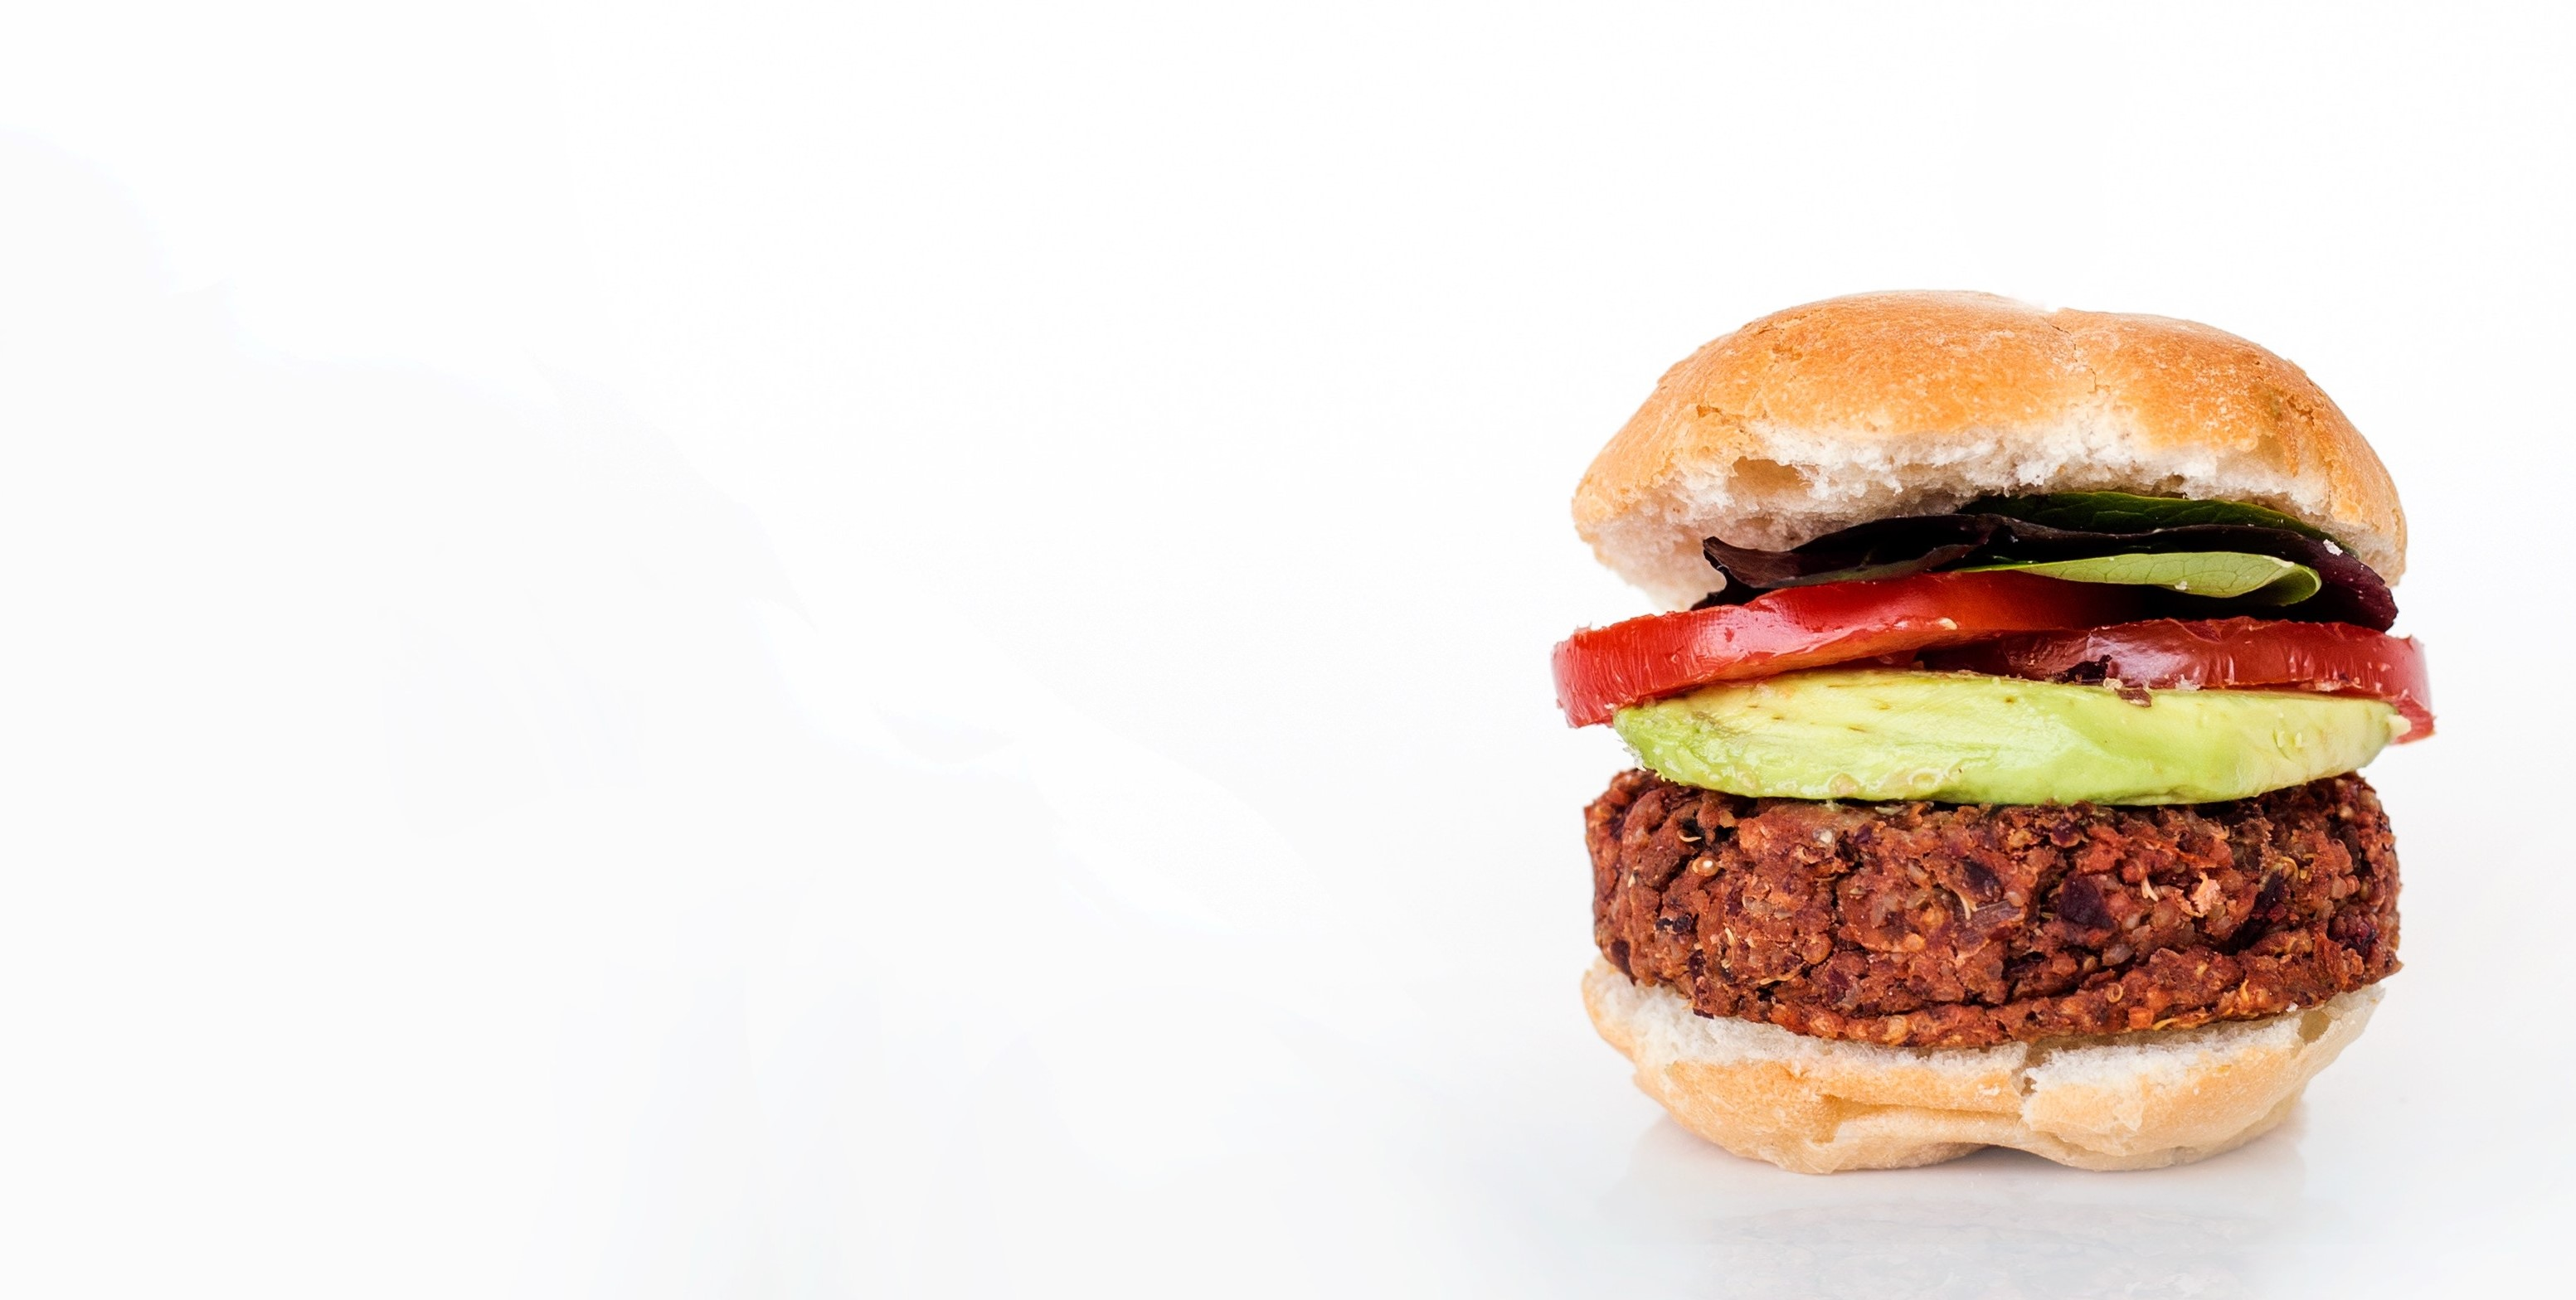 Plant based burger with avocado and tomato